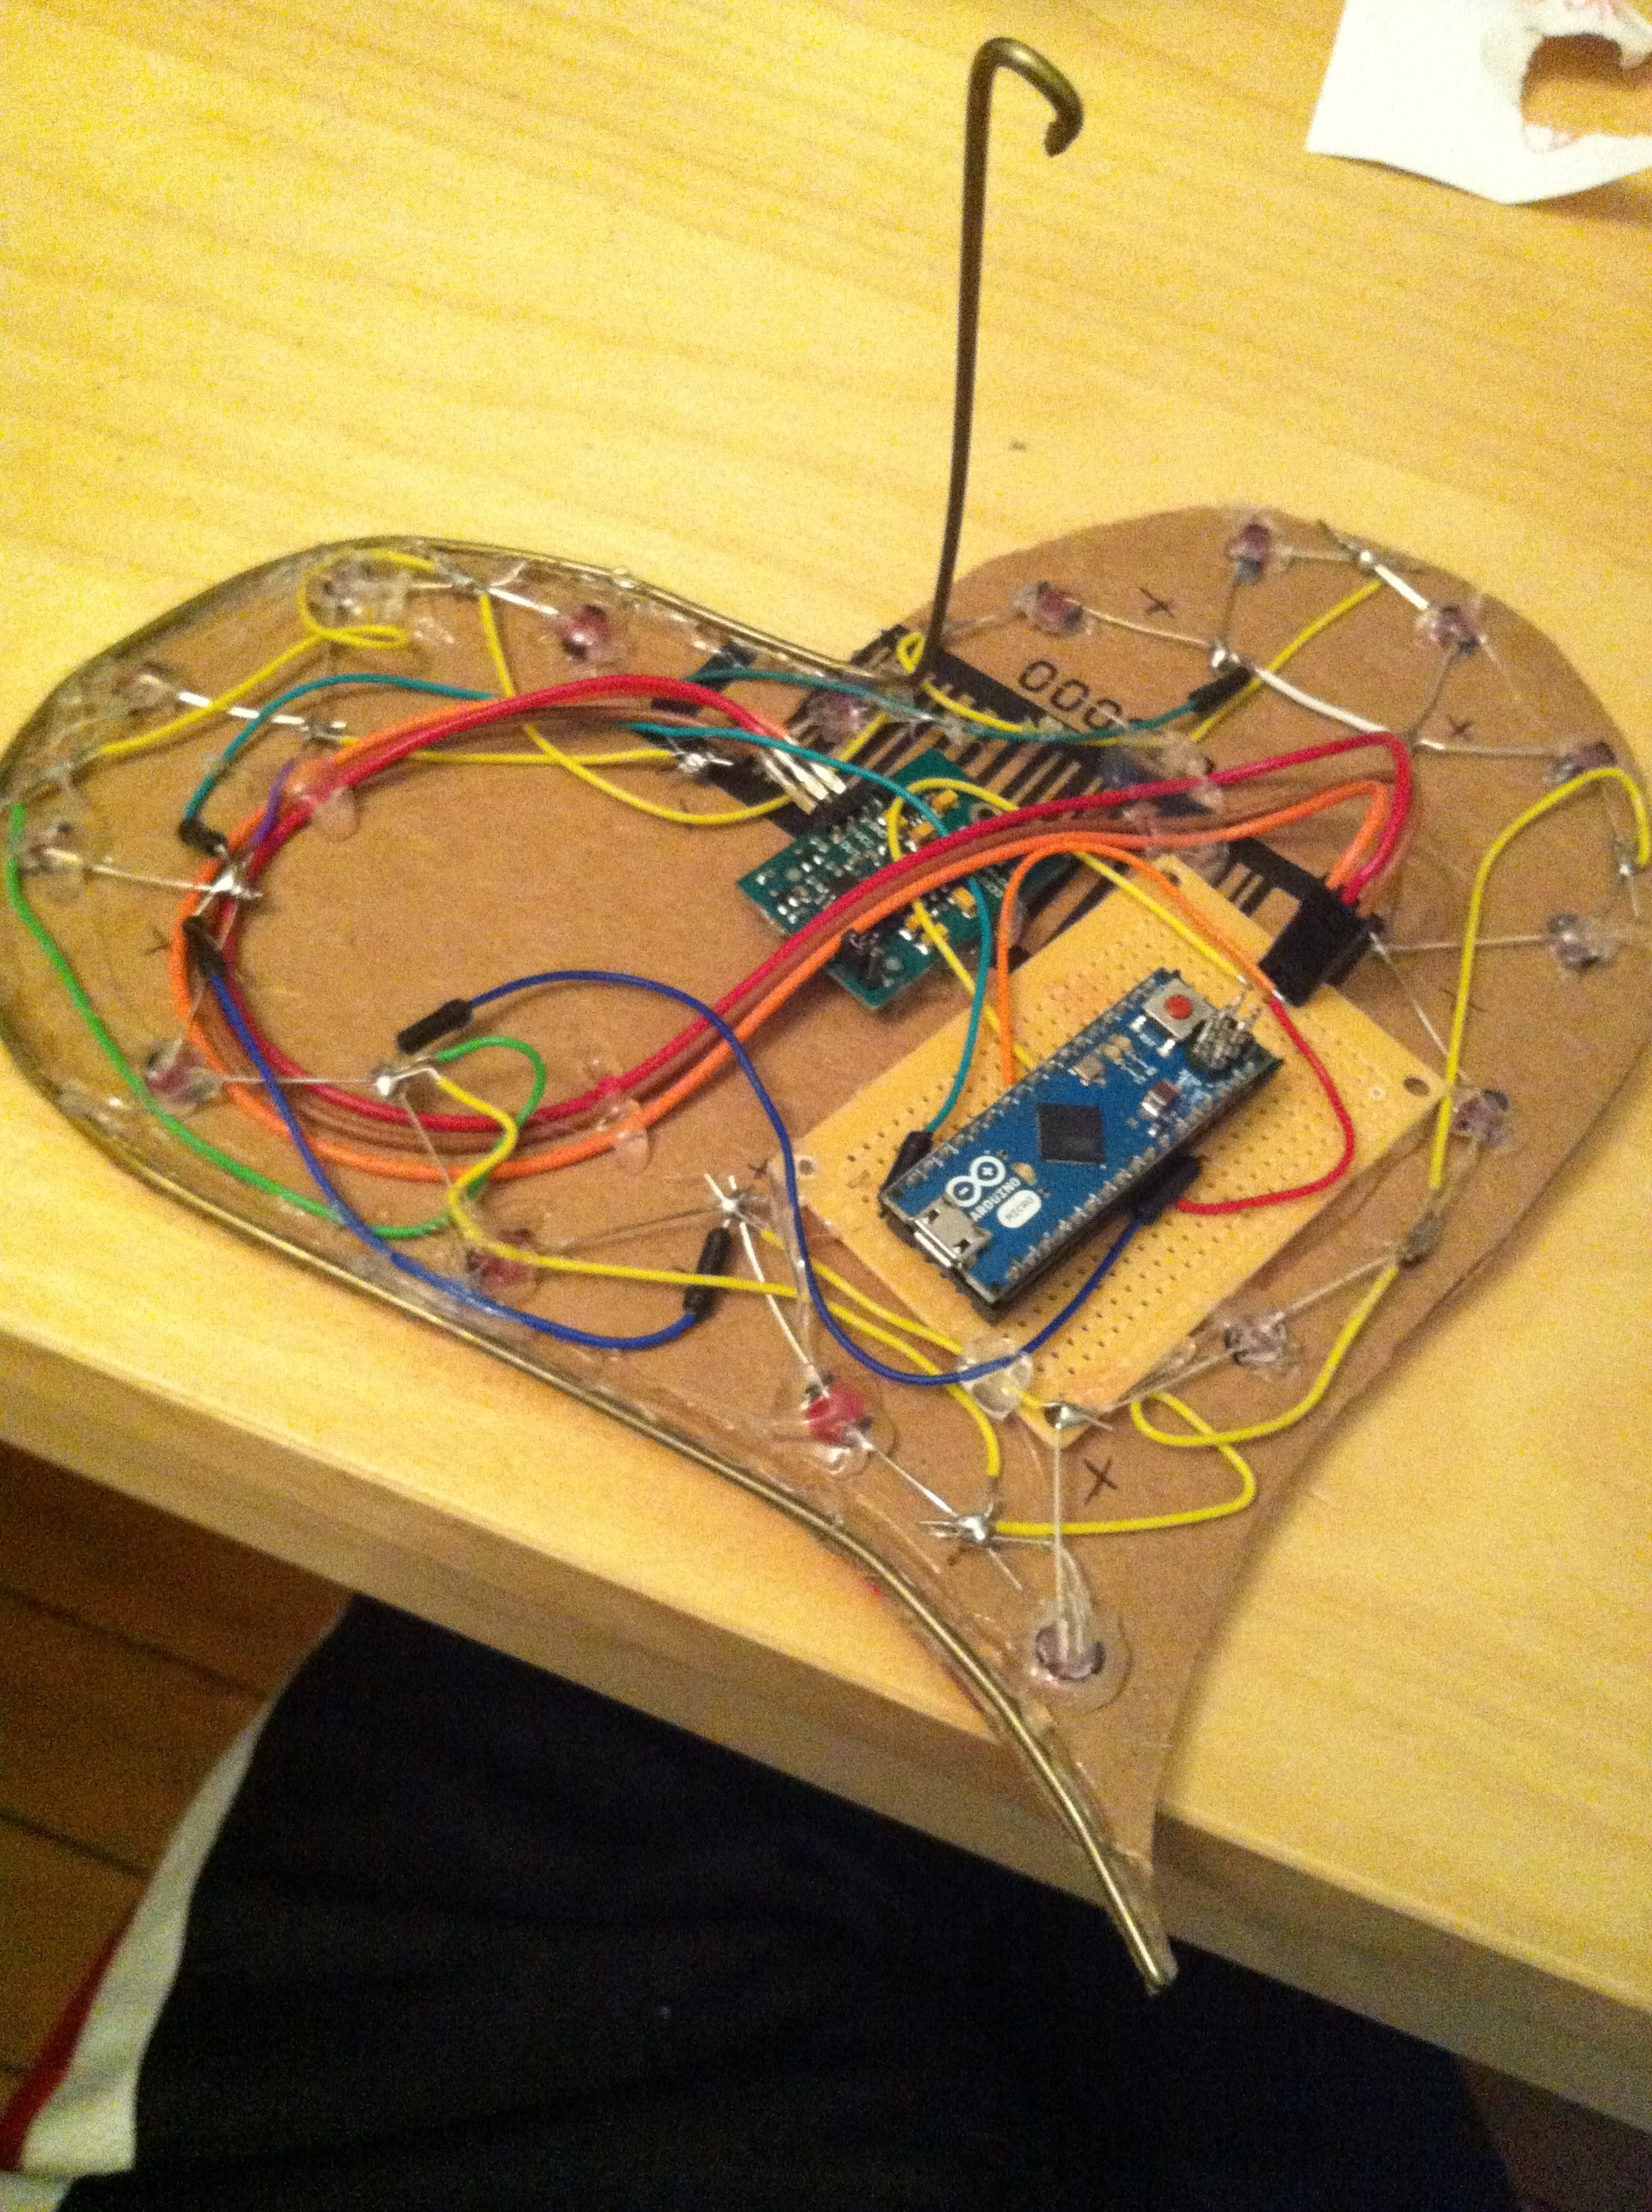 Picture of Completed Circuit